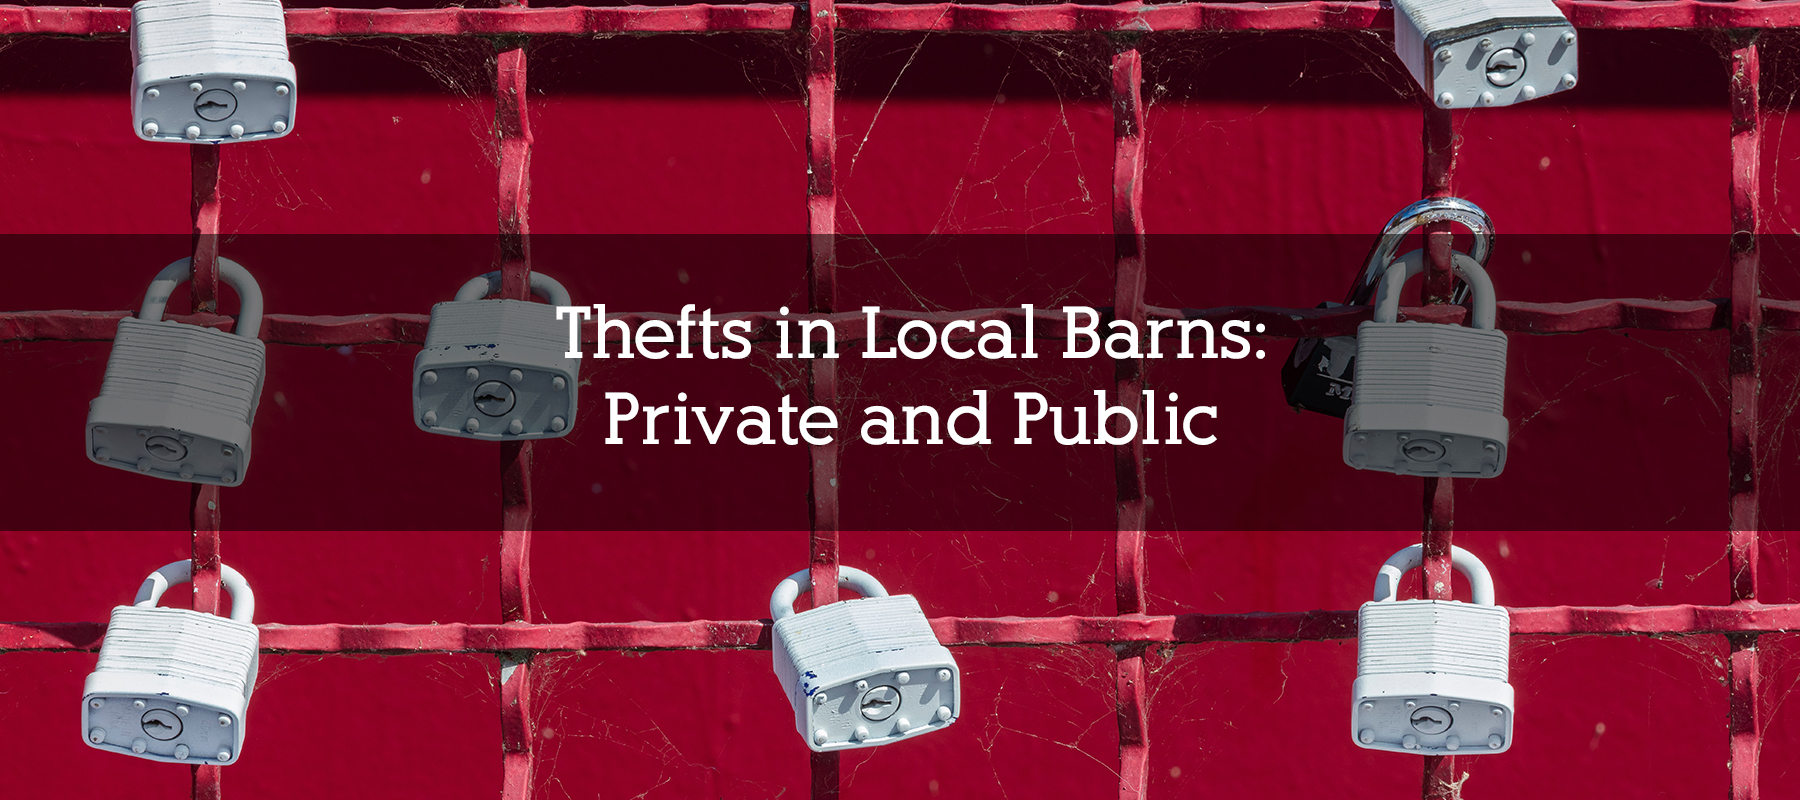 Thefts in Local Barns